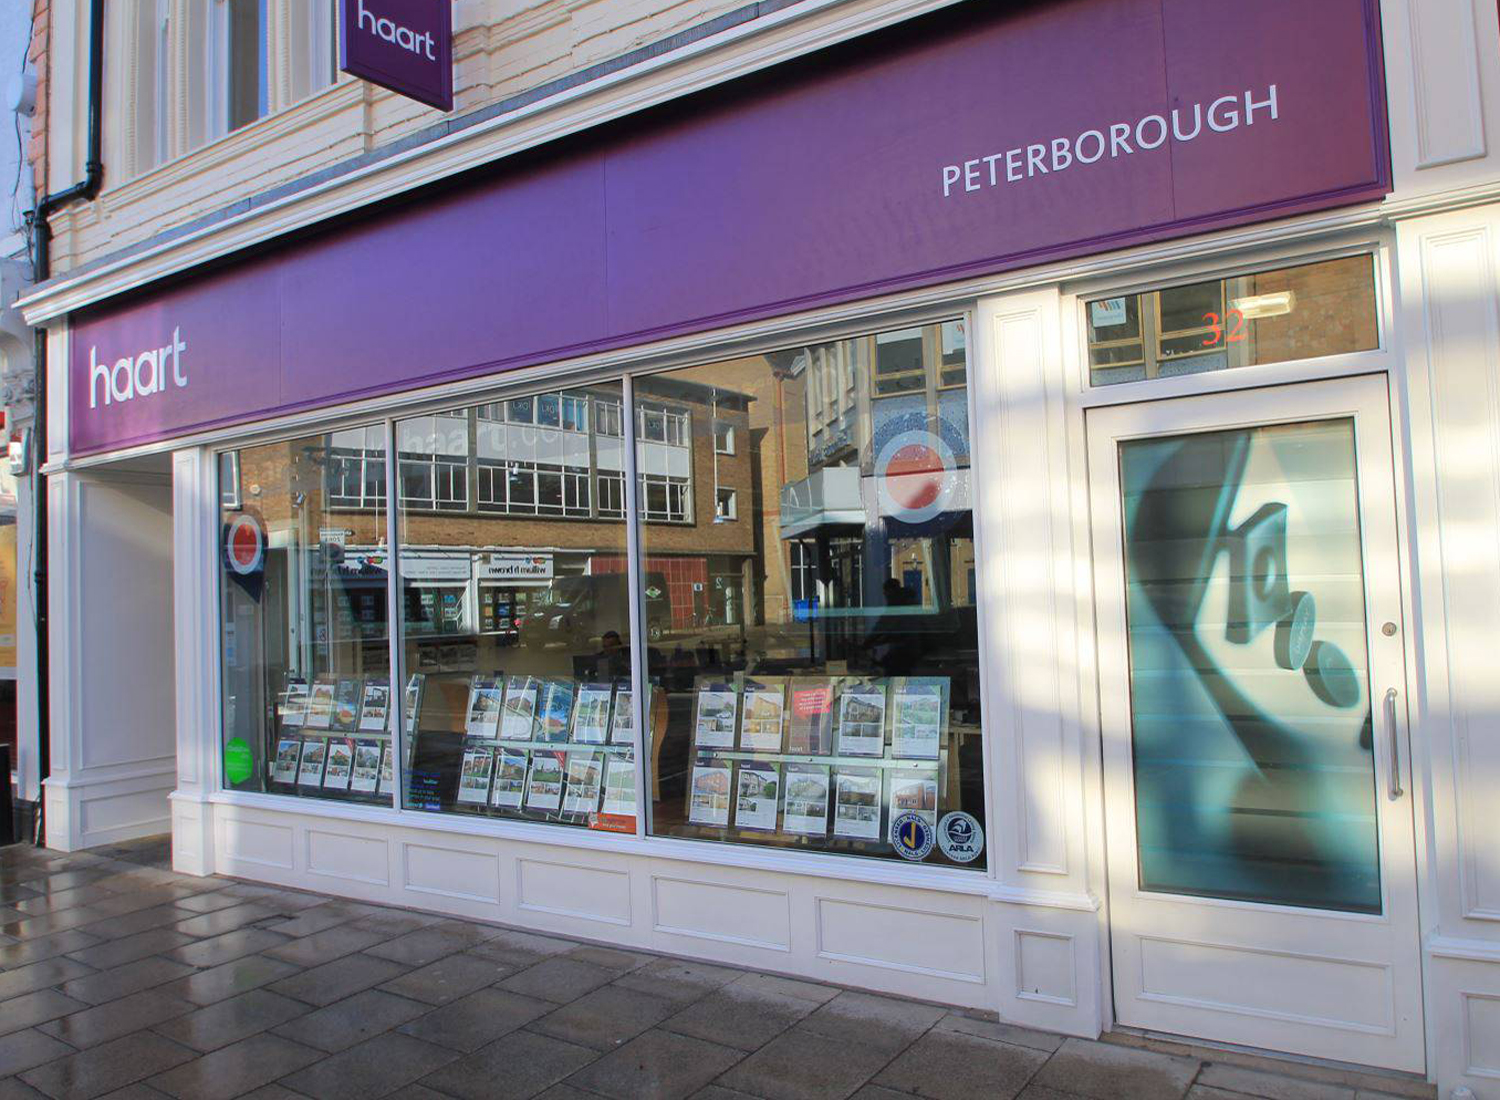 haart letting agents Peterborough - Peterborough, Cambridgeshire PE1 1NA - 01733 425104 | ShowMeLocal.com